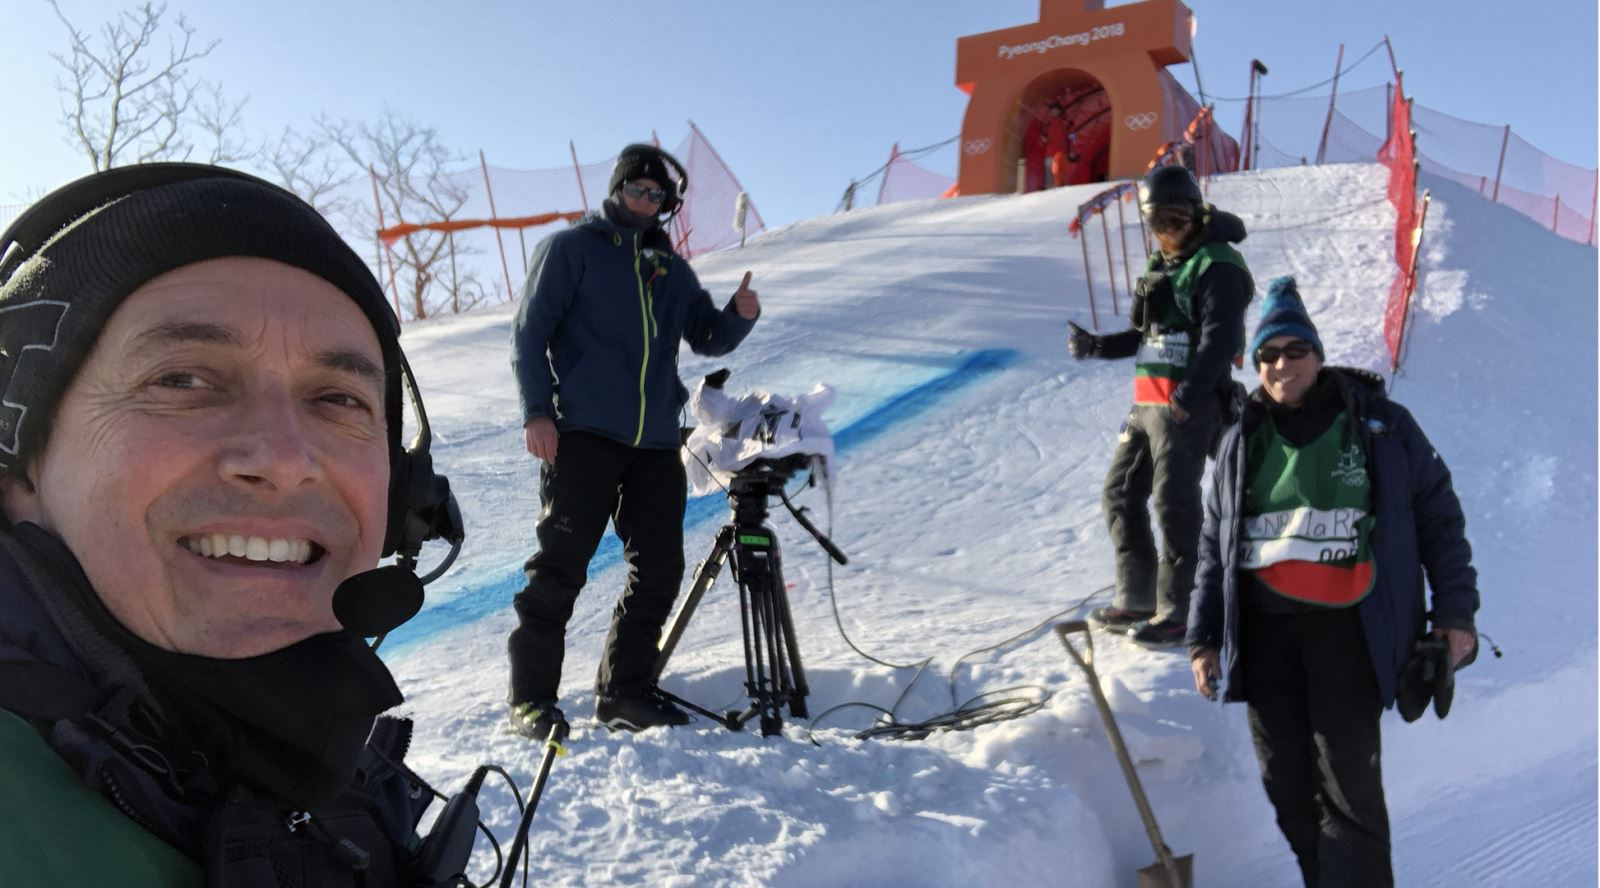 Graham Maunder with the rest of the NBC crew at the start of the Men's Downhill in PyeongChang